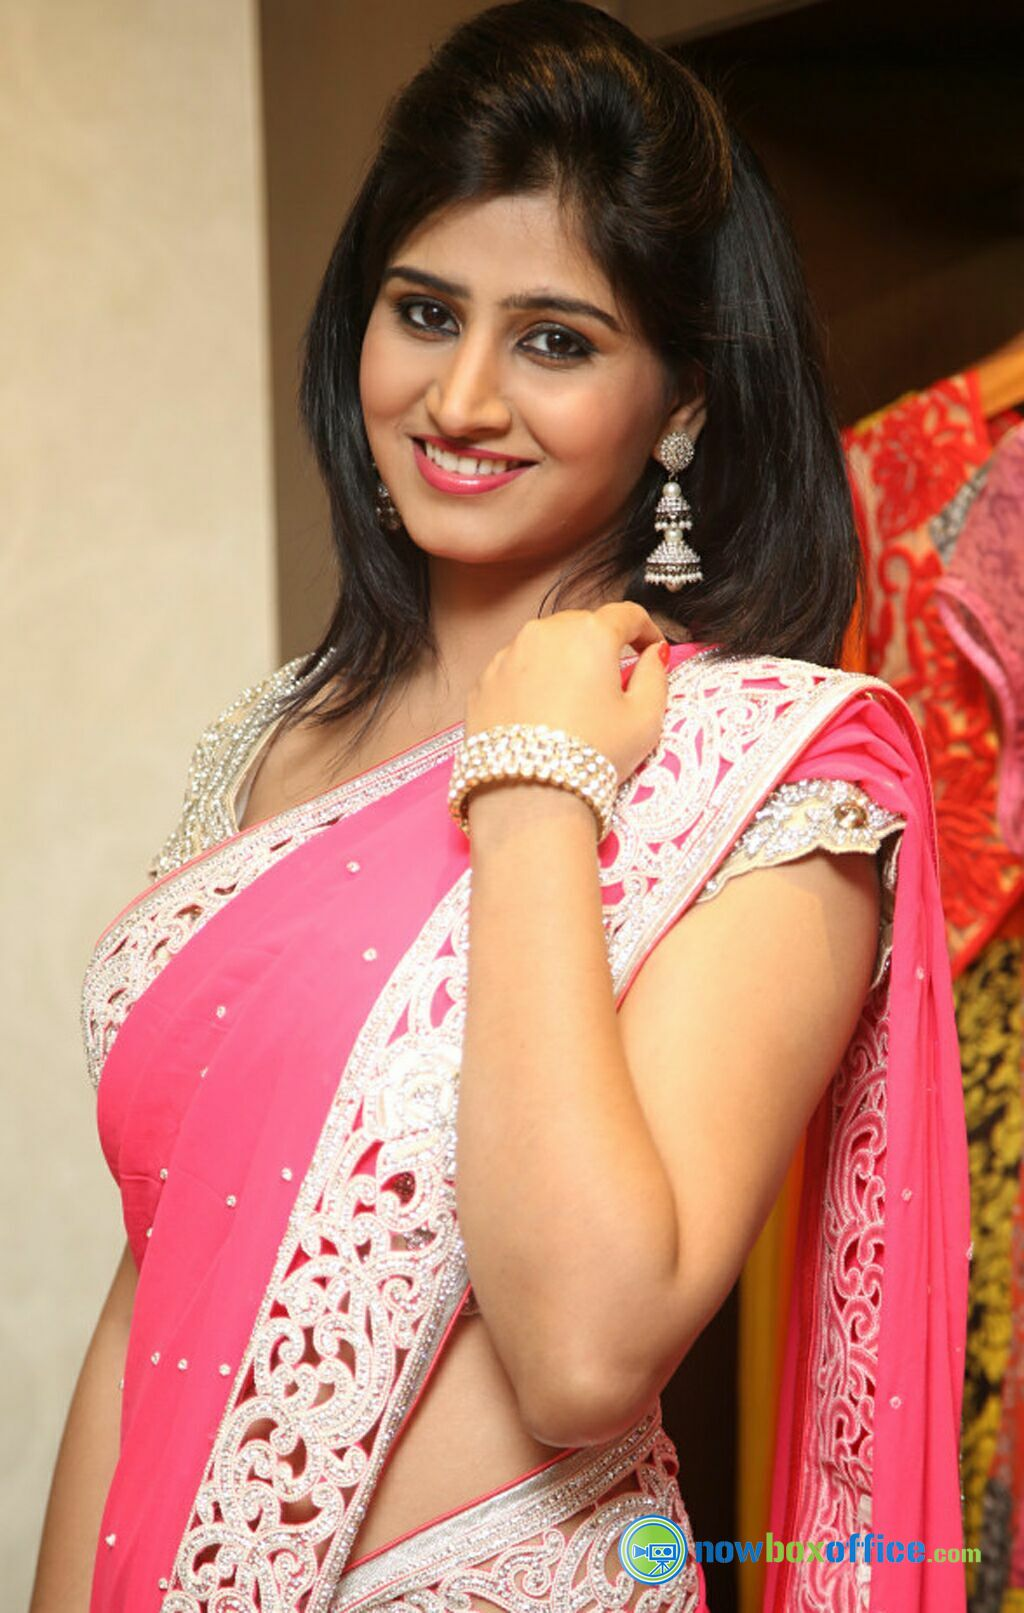 Layanam now serial actress 6